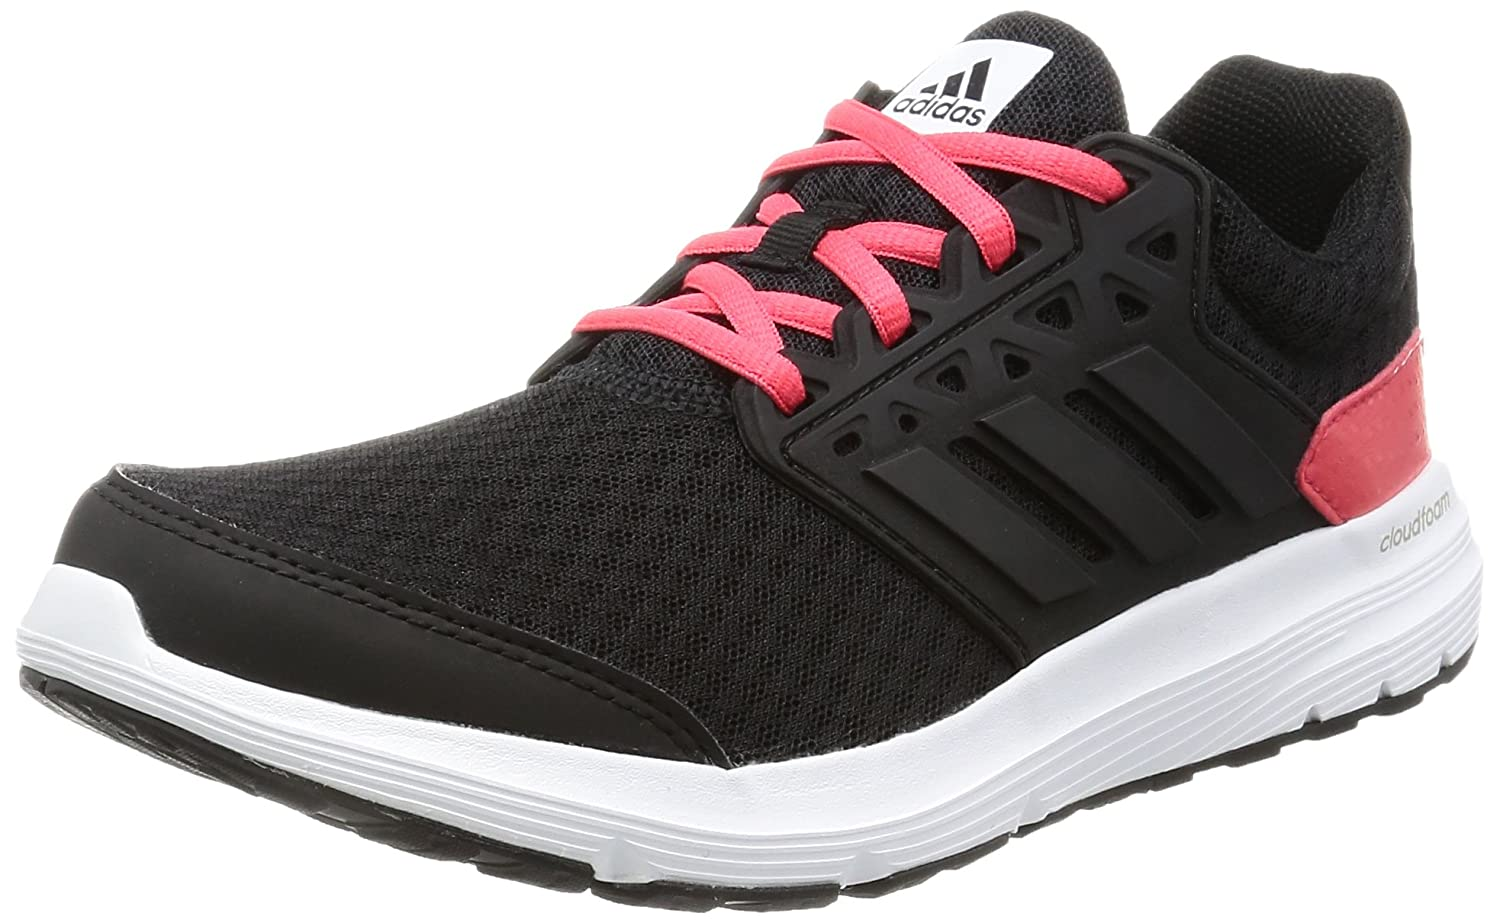 Adidas - Galaxy 3 W - BB4368 - El Color: Negros - Talla: 38.0: Amazon.es: Zapatos y complementos